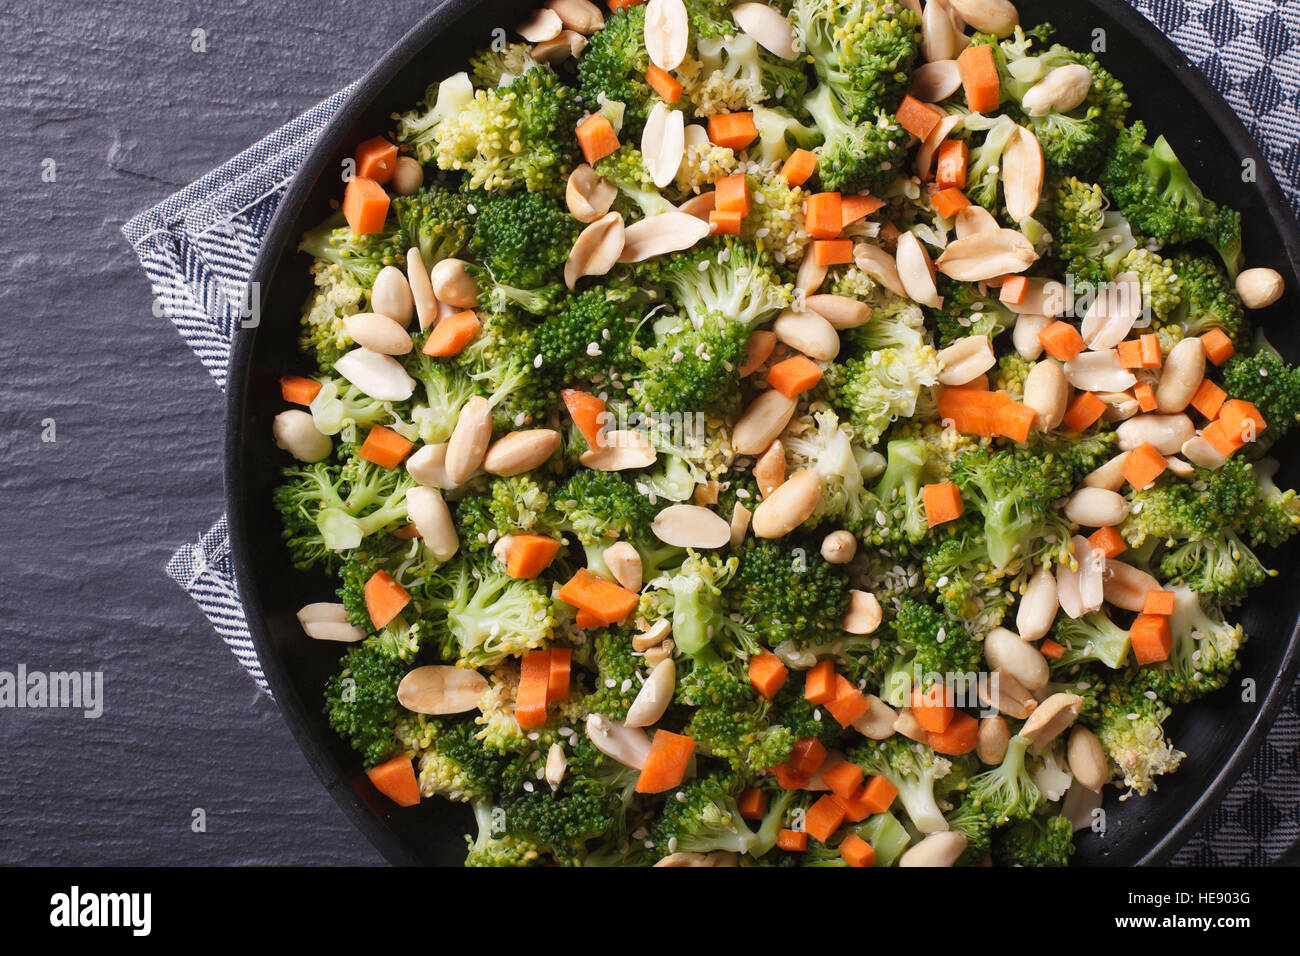 Healthy food: Broccoli with peanuts and carrots close-up on a black plate. horizontal view from above - Stock Image